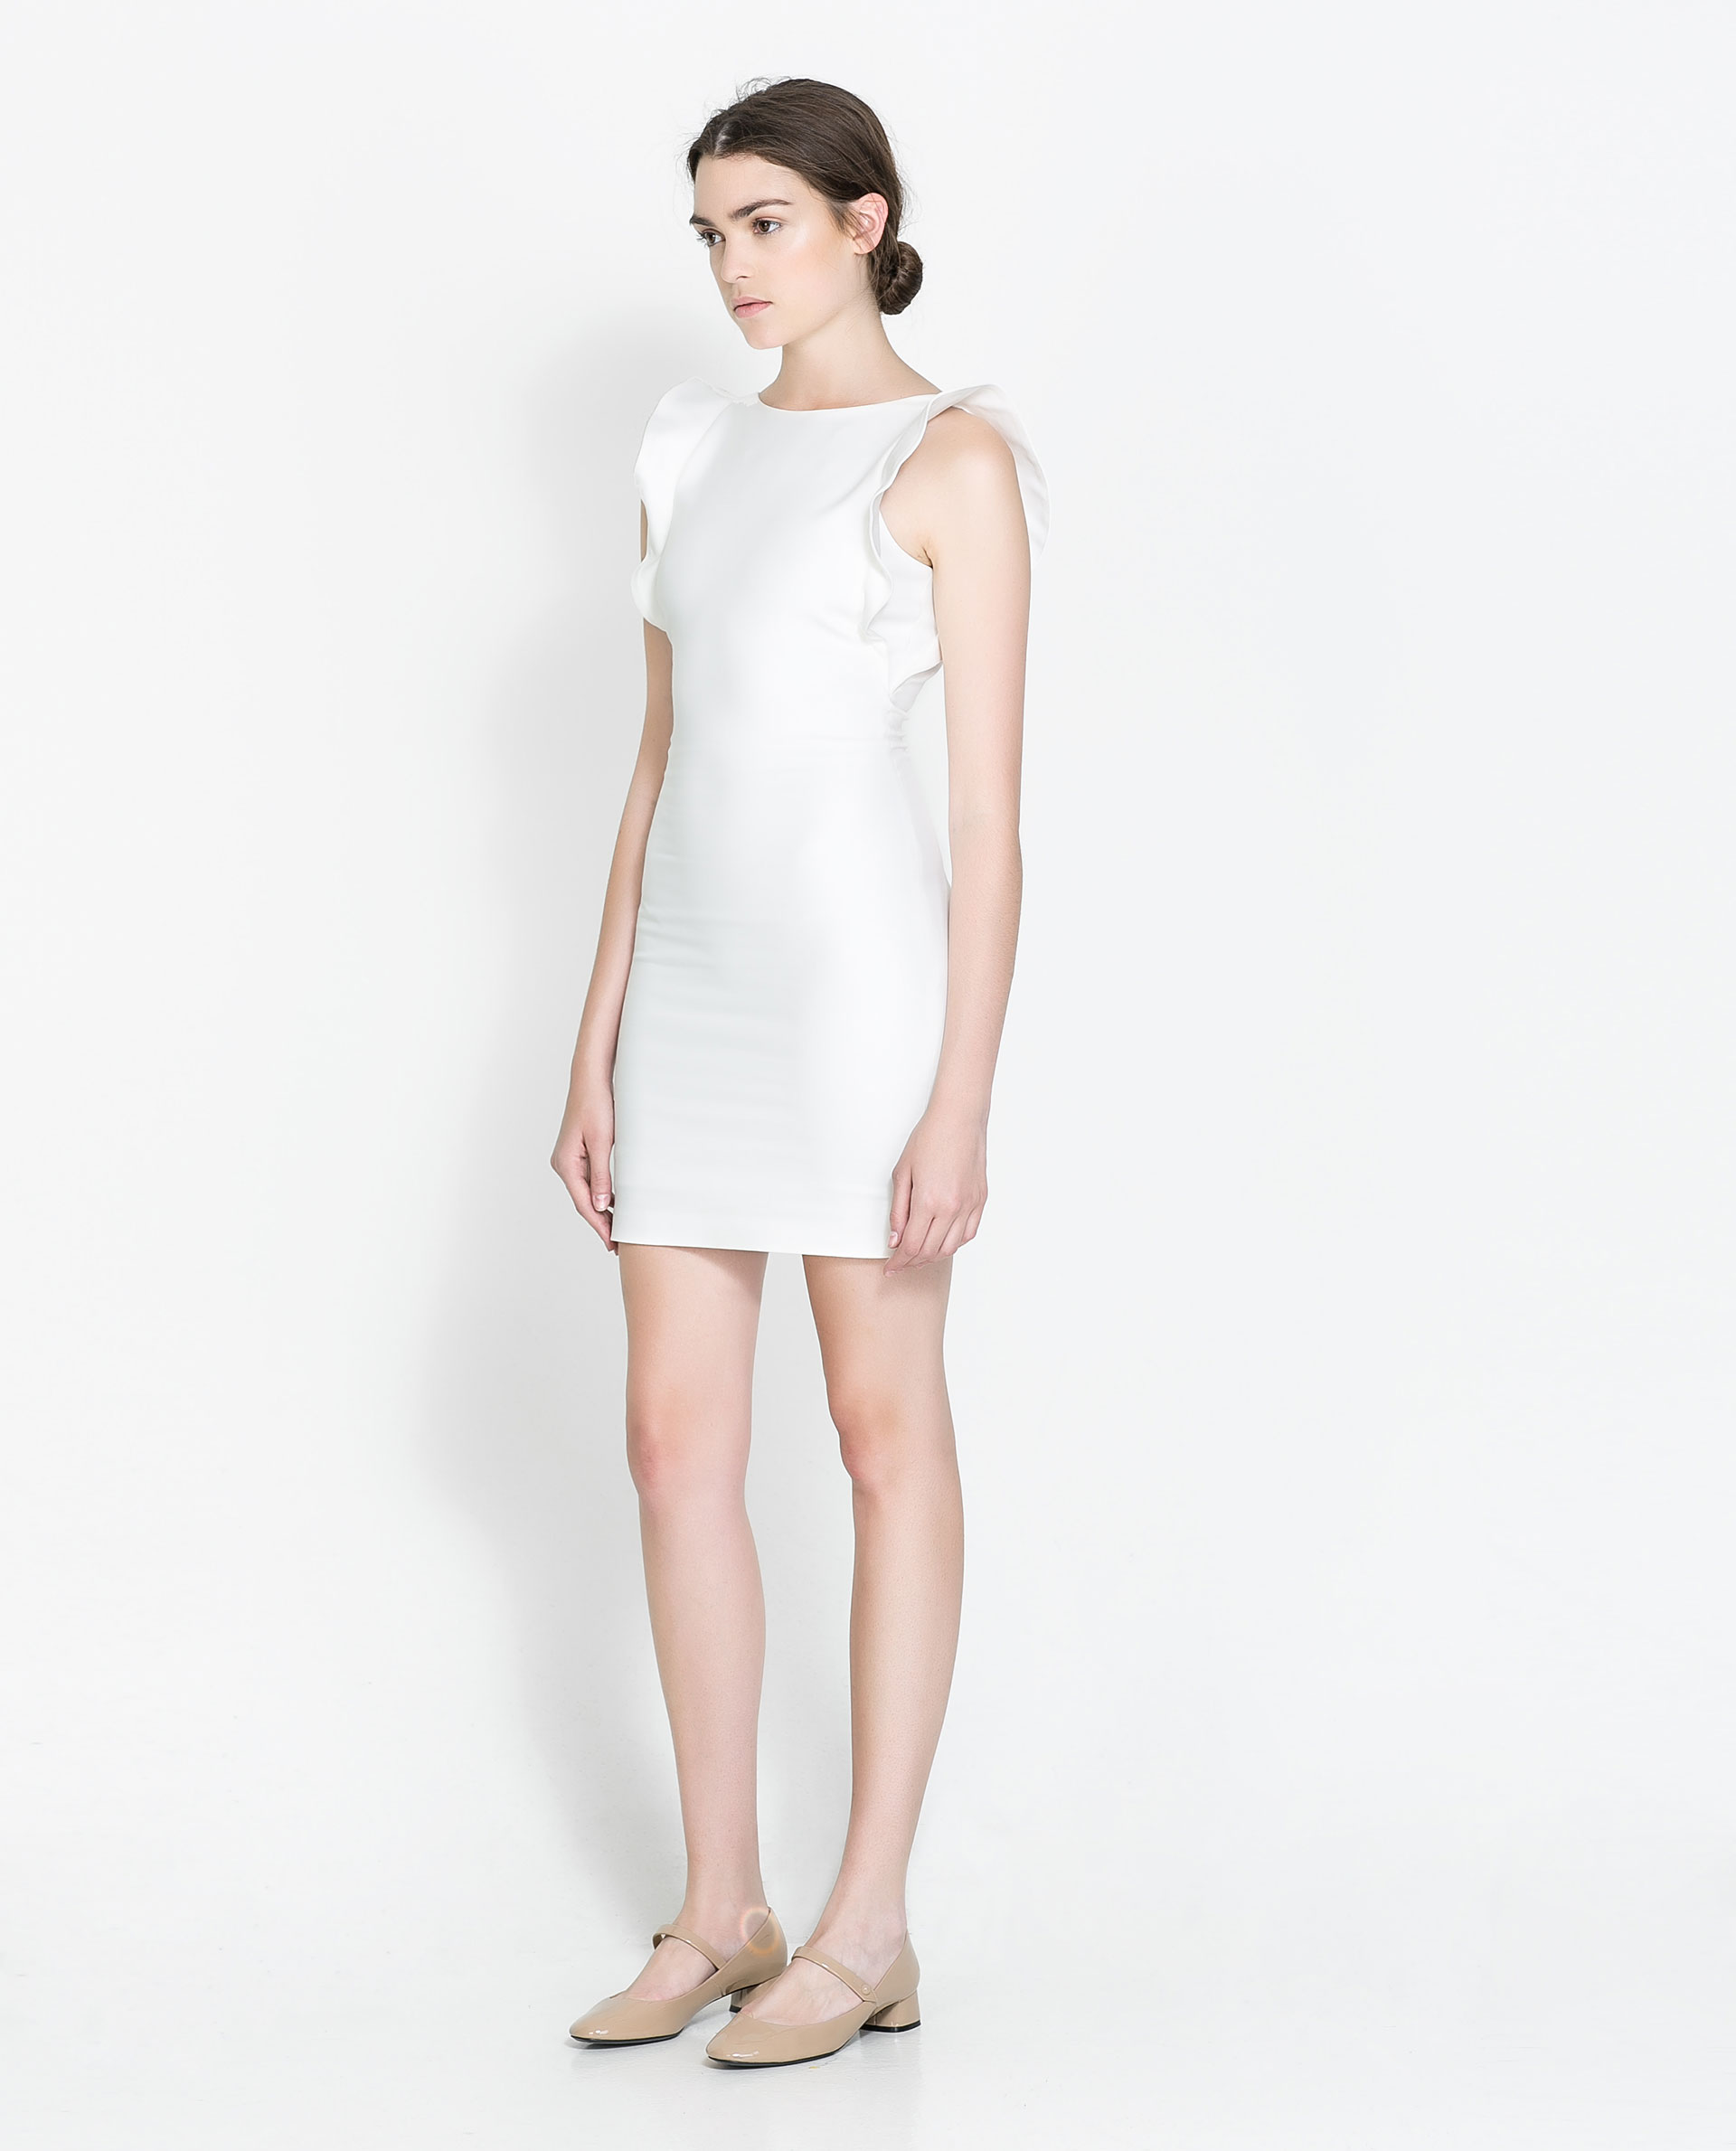 Brilliant LACE DRESS  Mini  Dresses  WOMAN  SALE  ZARA United States